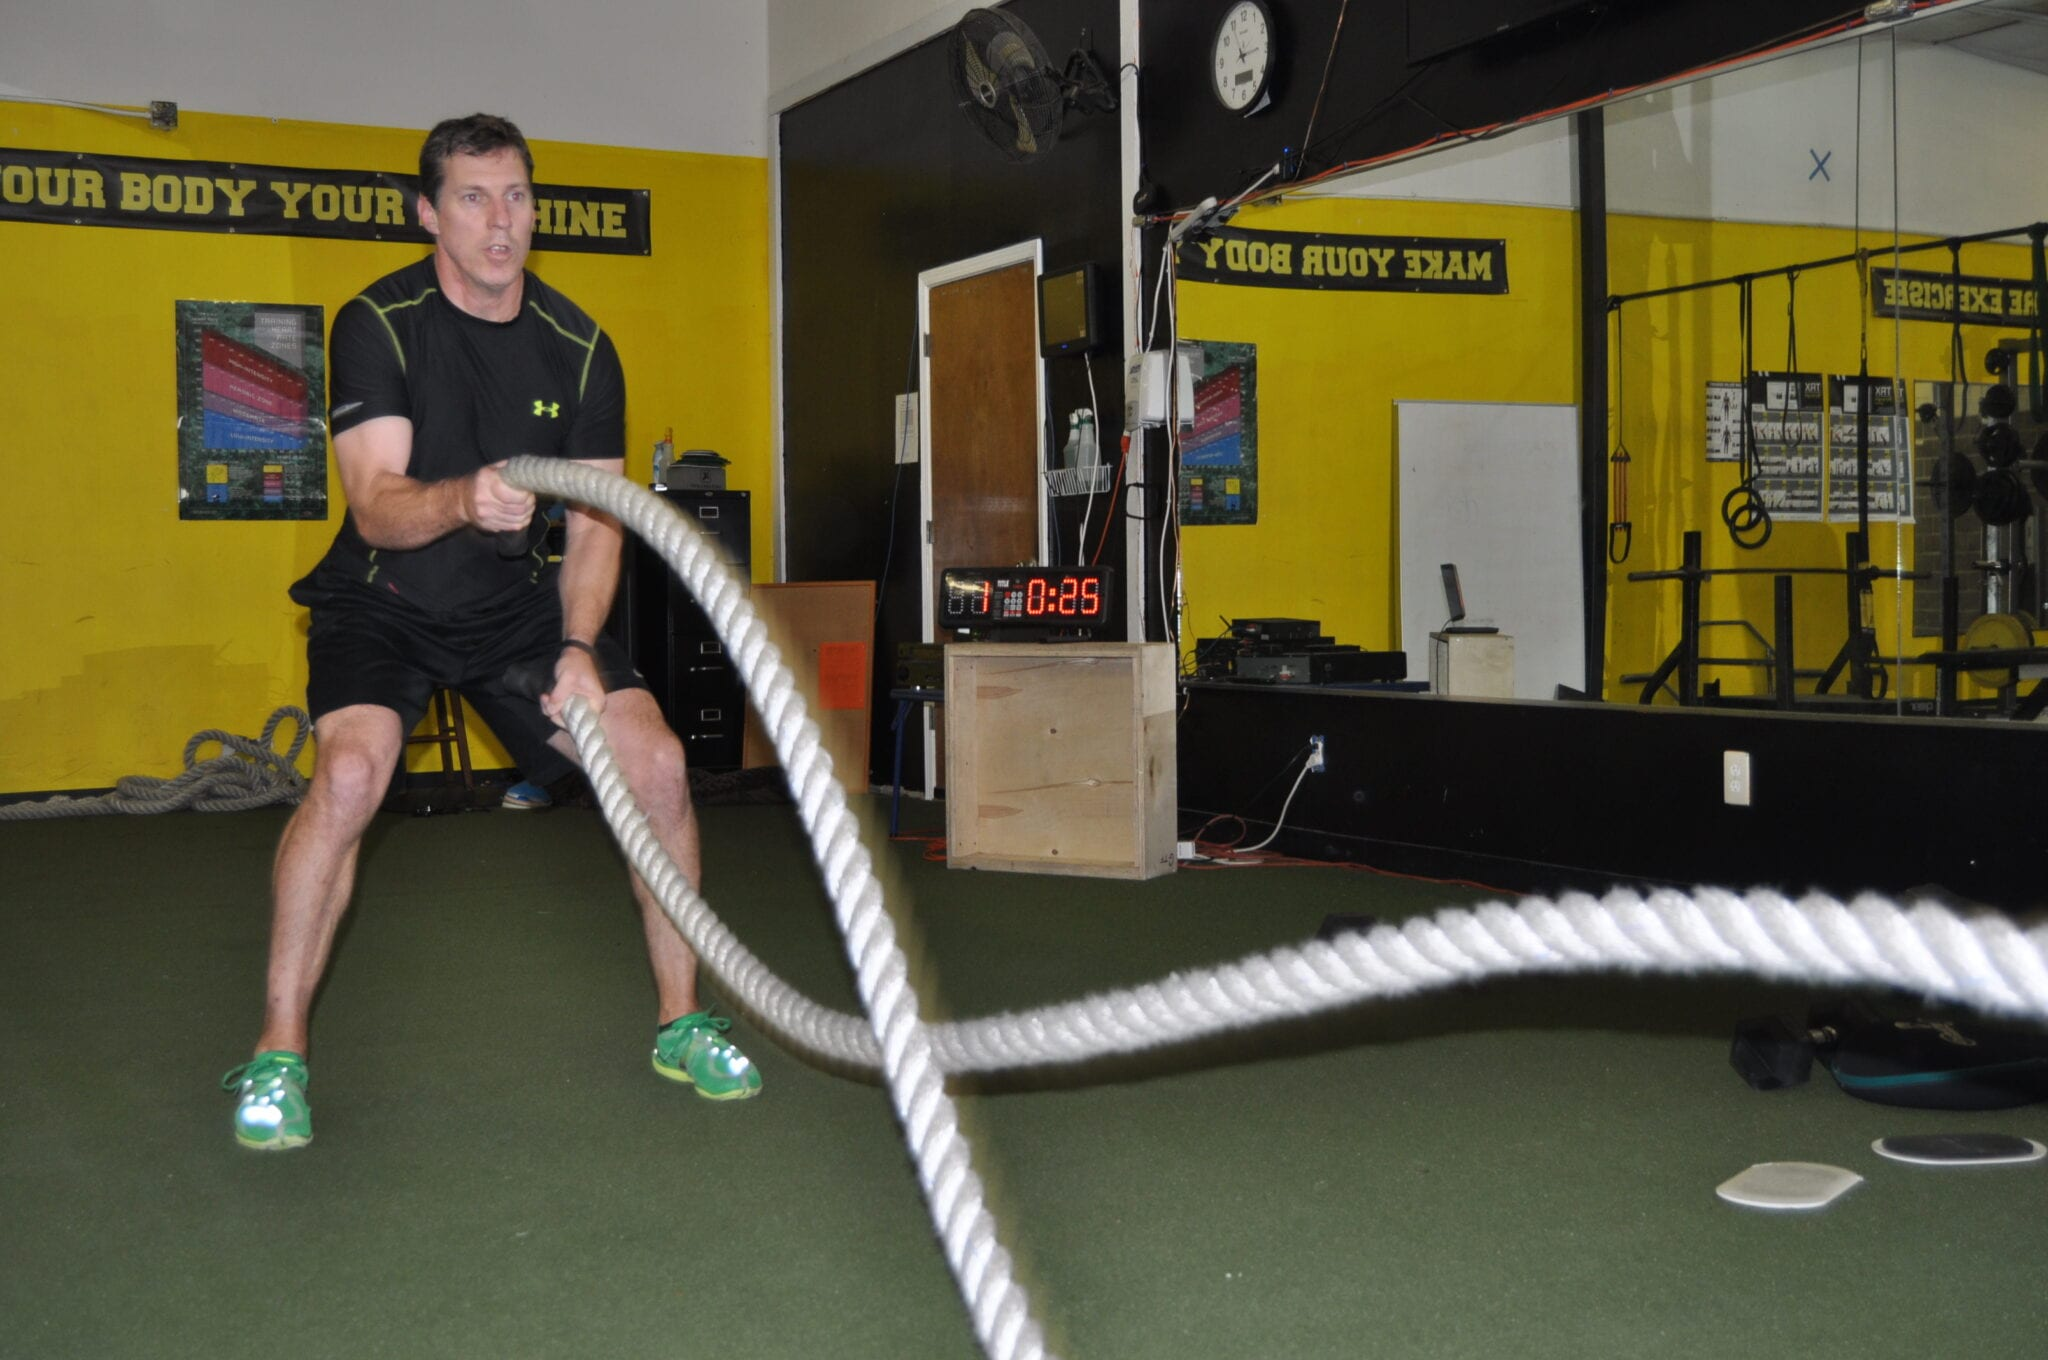 john using ropes for cardio